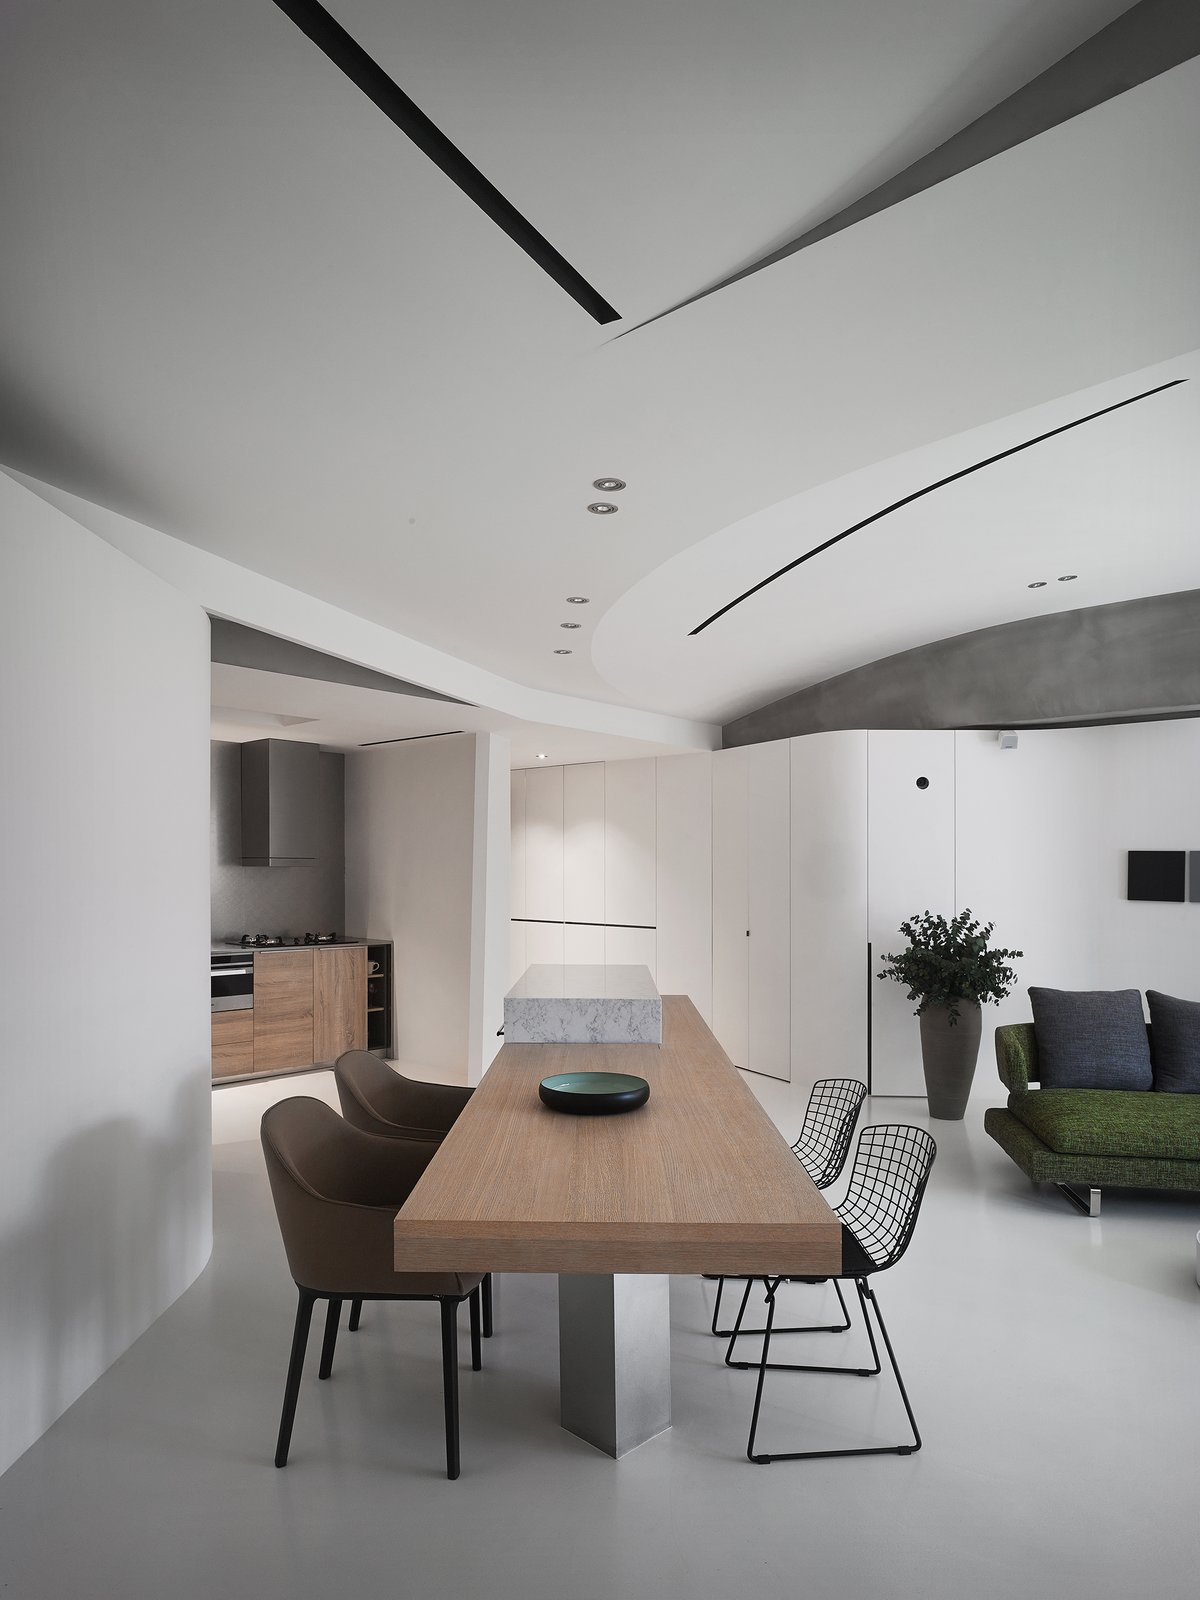 The living space is equipped with a home cinema and a mini bar to enhance the entertainment facilities for social activities.  Tagged: Dining Room, Chair, Ceiling Lighting, Table, Bar, and Concrete Floor.  Fluid House